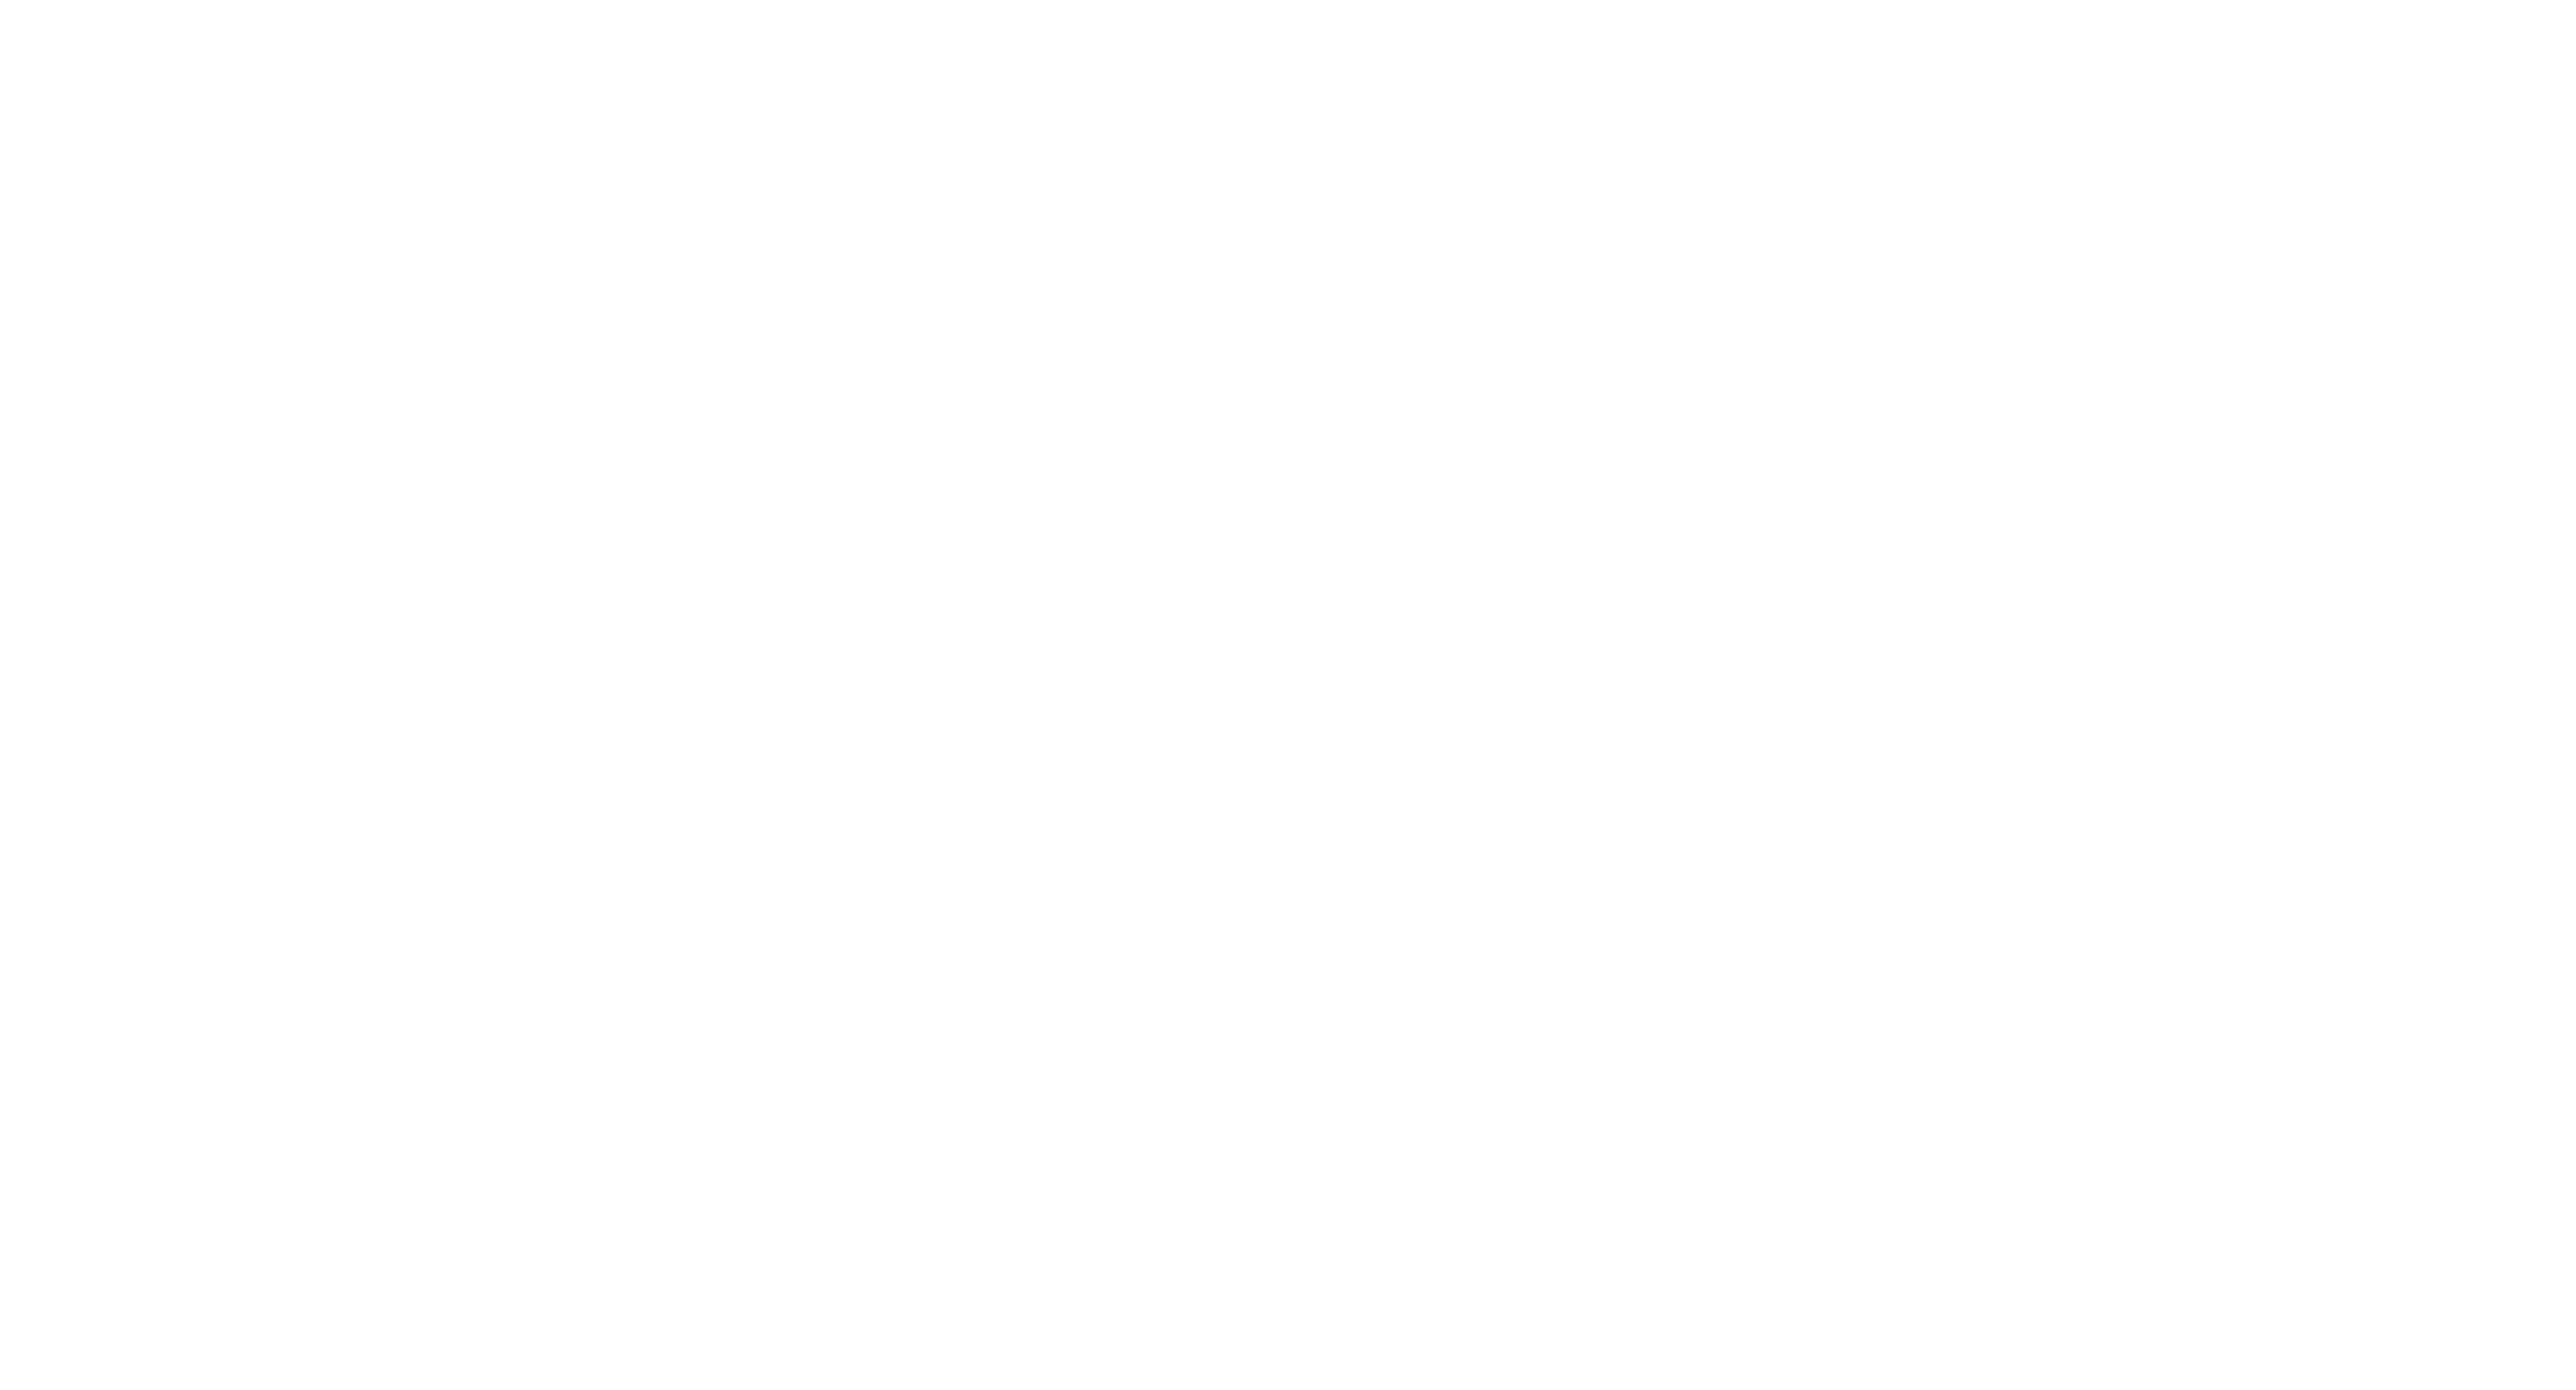 North Norfolk and Great Yarmouth Liberal Democrats